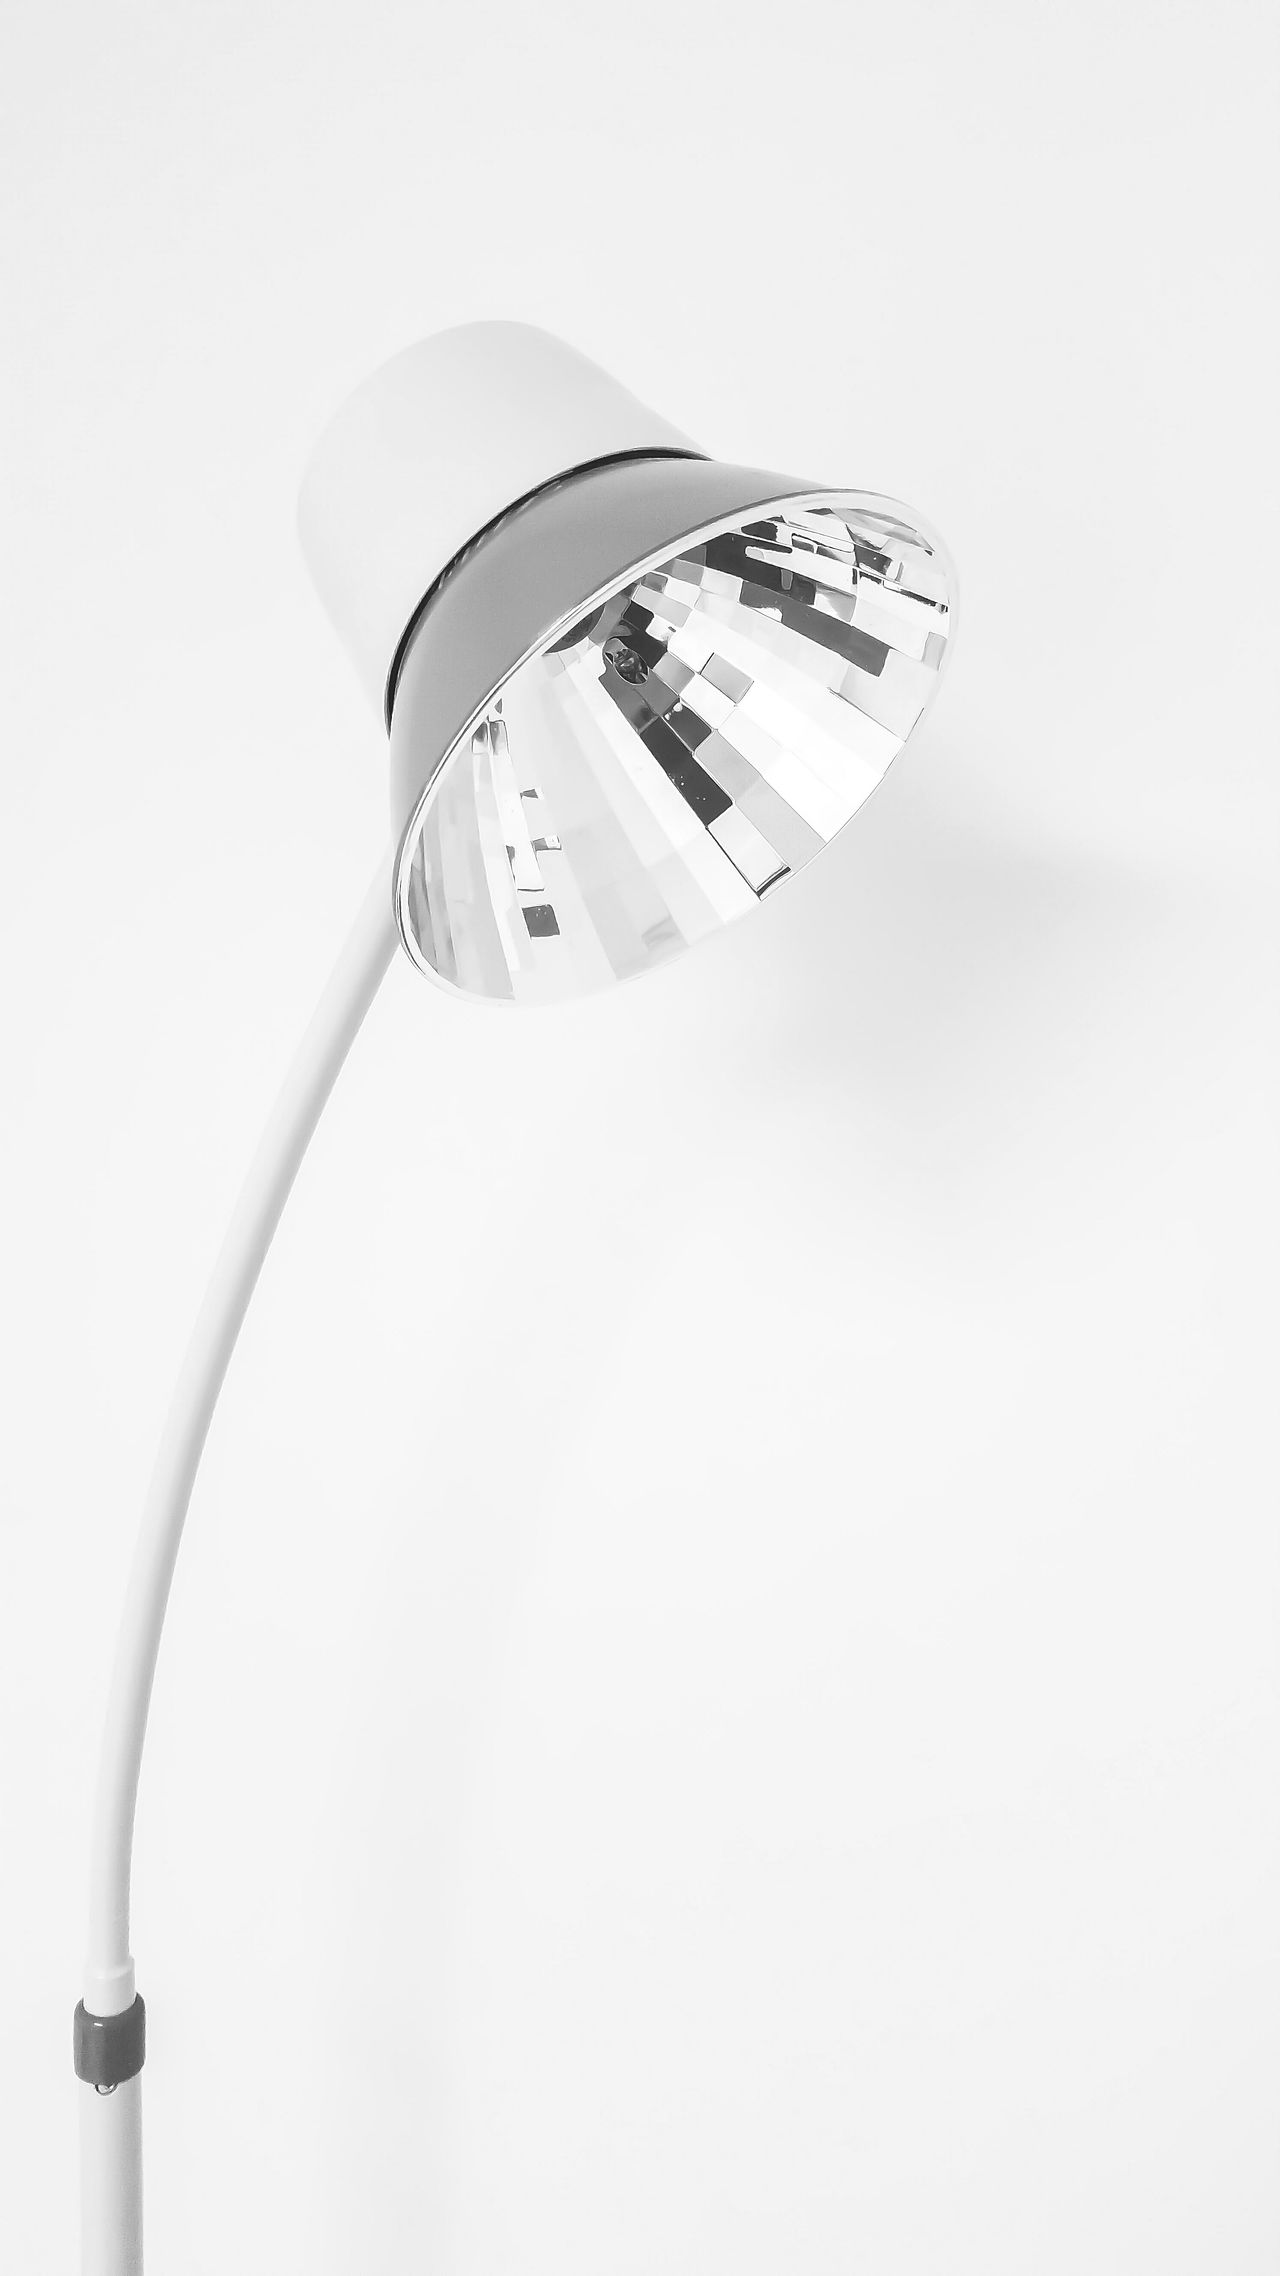 White Background Close-up Fragility Shiny No People Indoors  Lamp Floor Lamp Reflection Interior Design Light Light Source Functional Design Room For Copy Room For Text Minimalism The Minimalist Single Object Building Interior Background Black And White Photography Decorative Design Softness Pastel Colors Shiny Surfaces